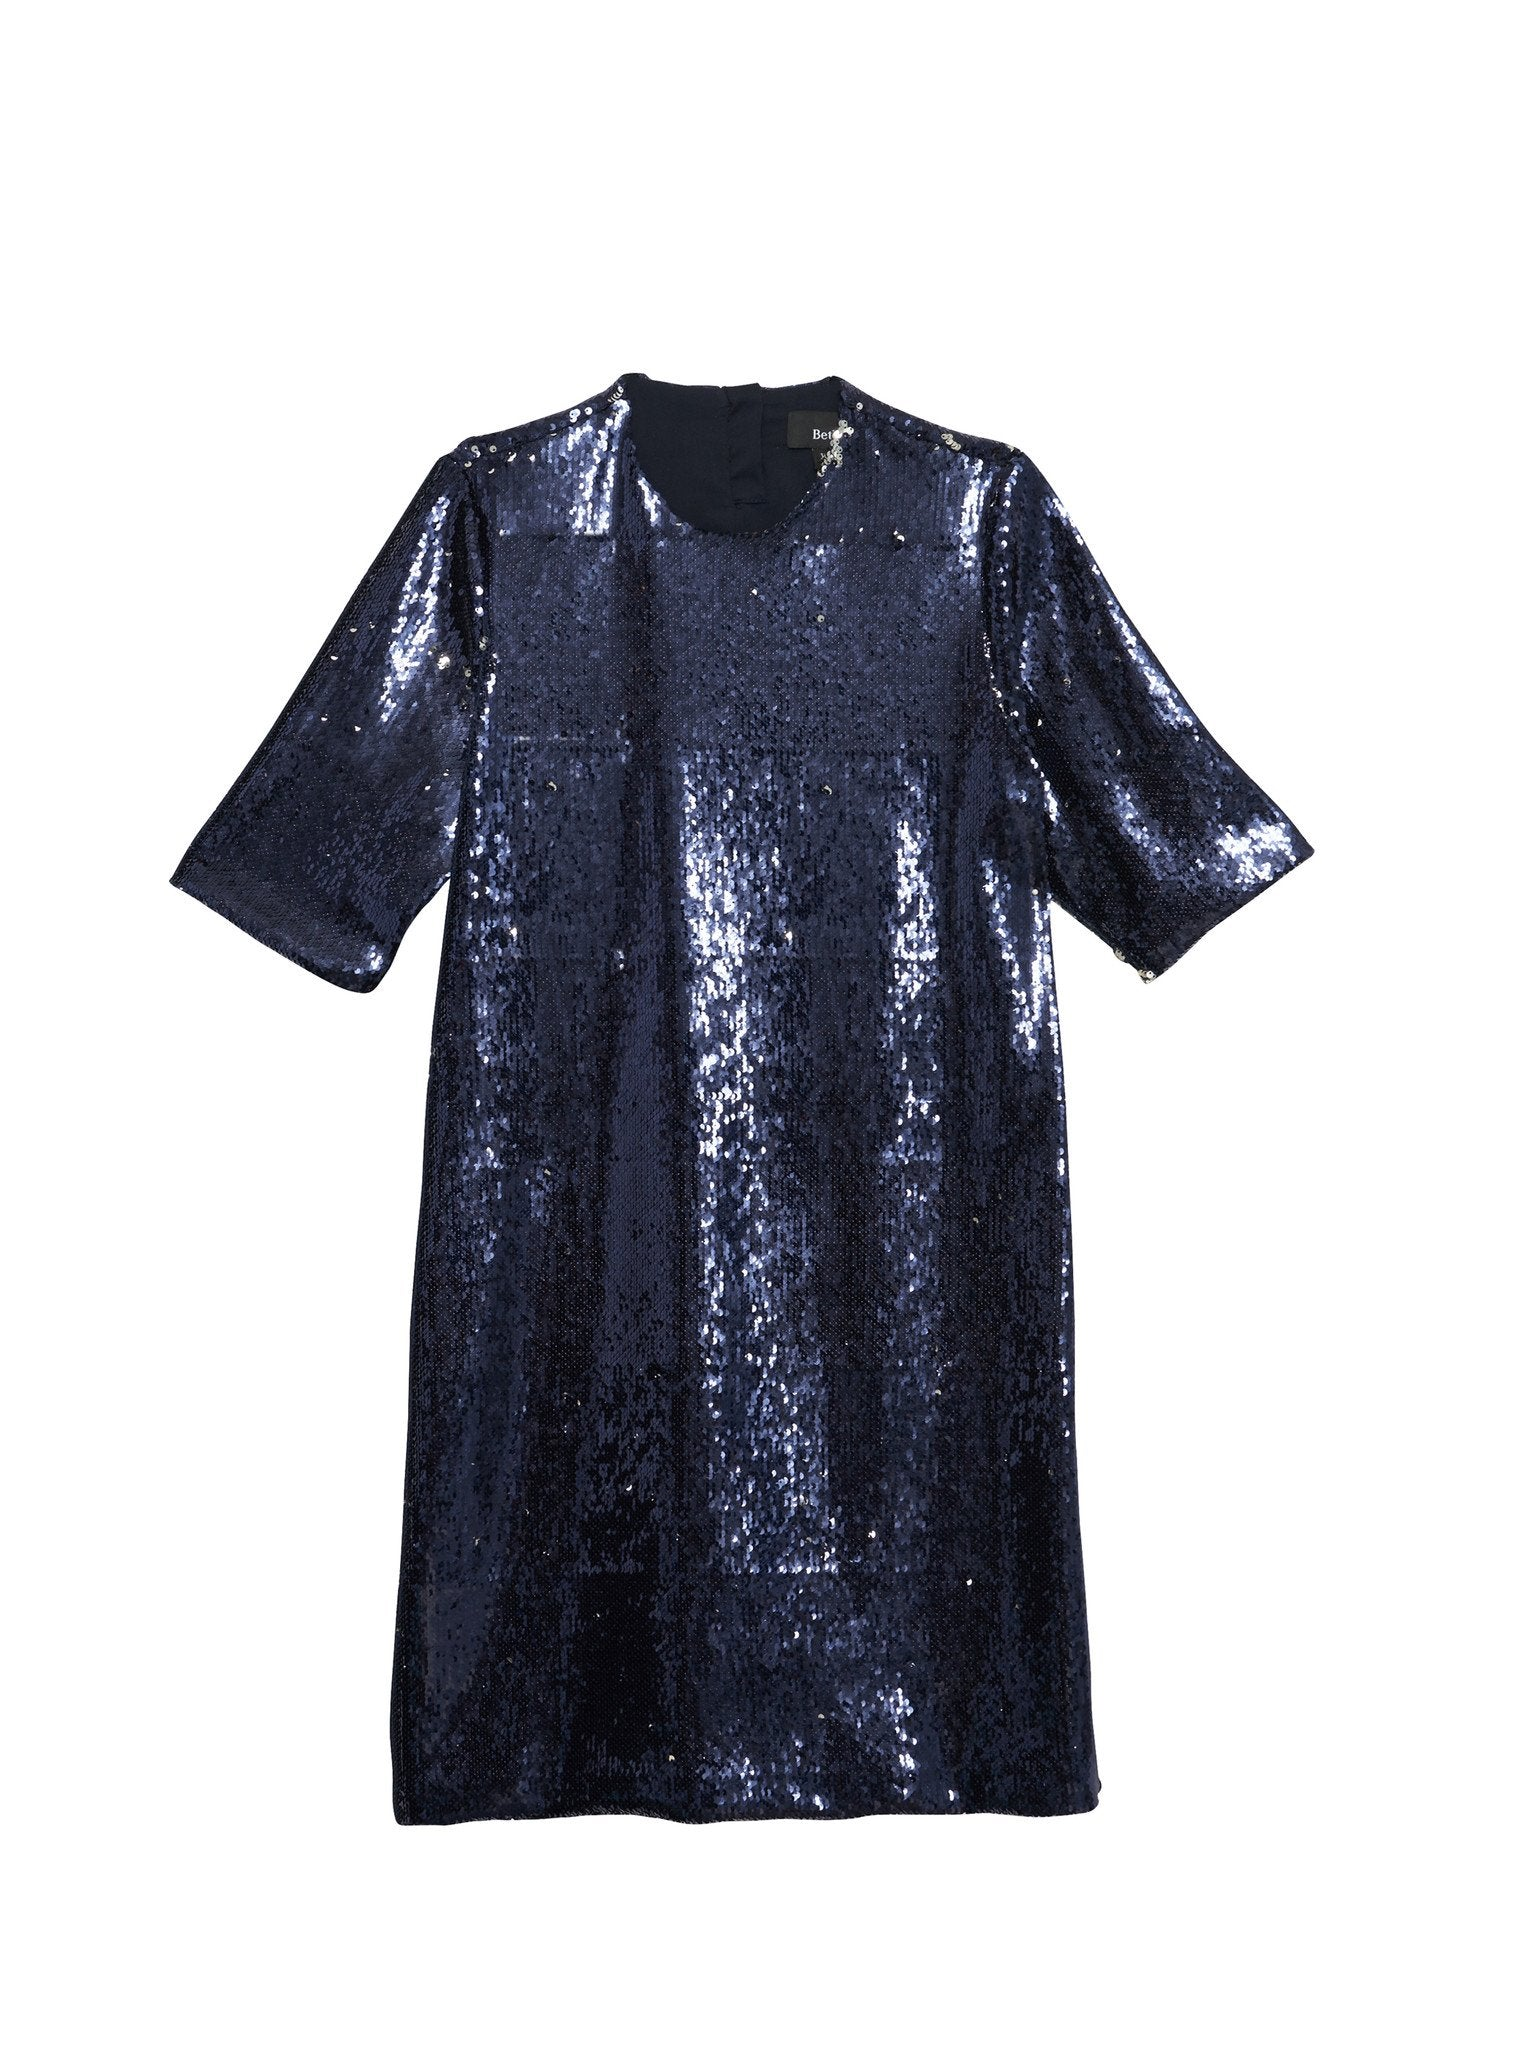 Park Dress / Navy Sequins